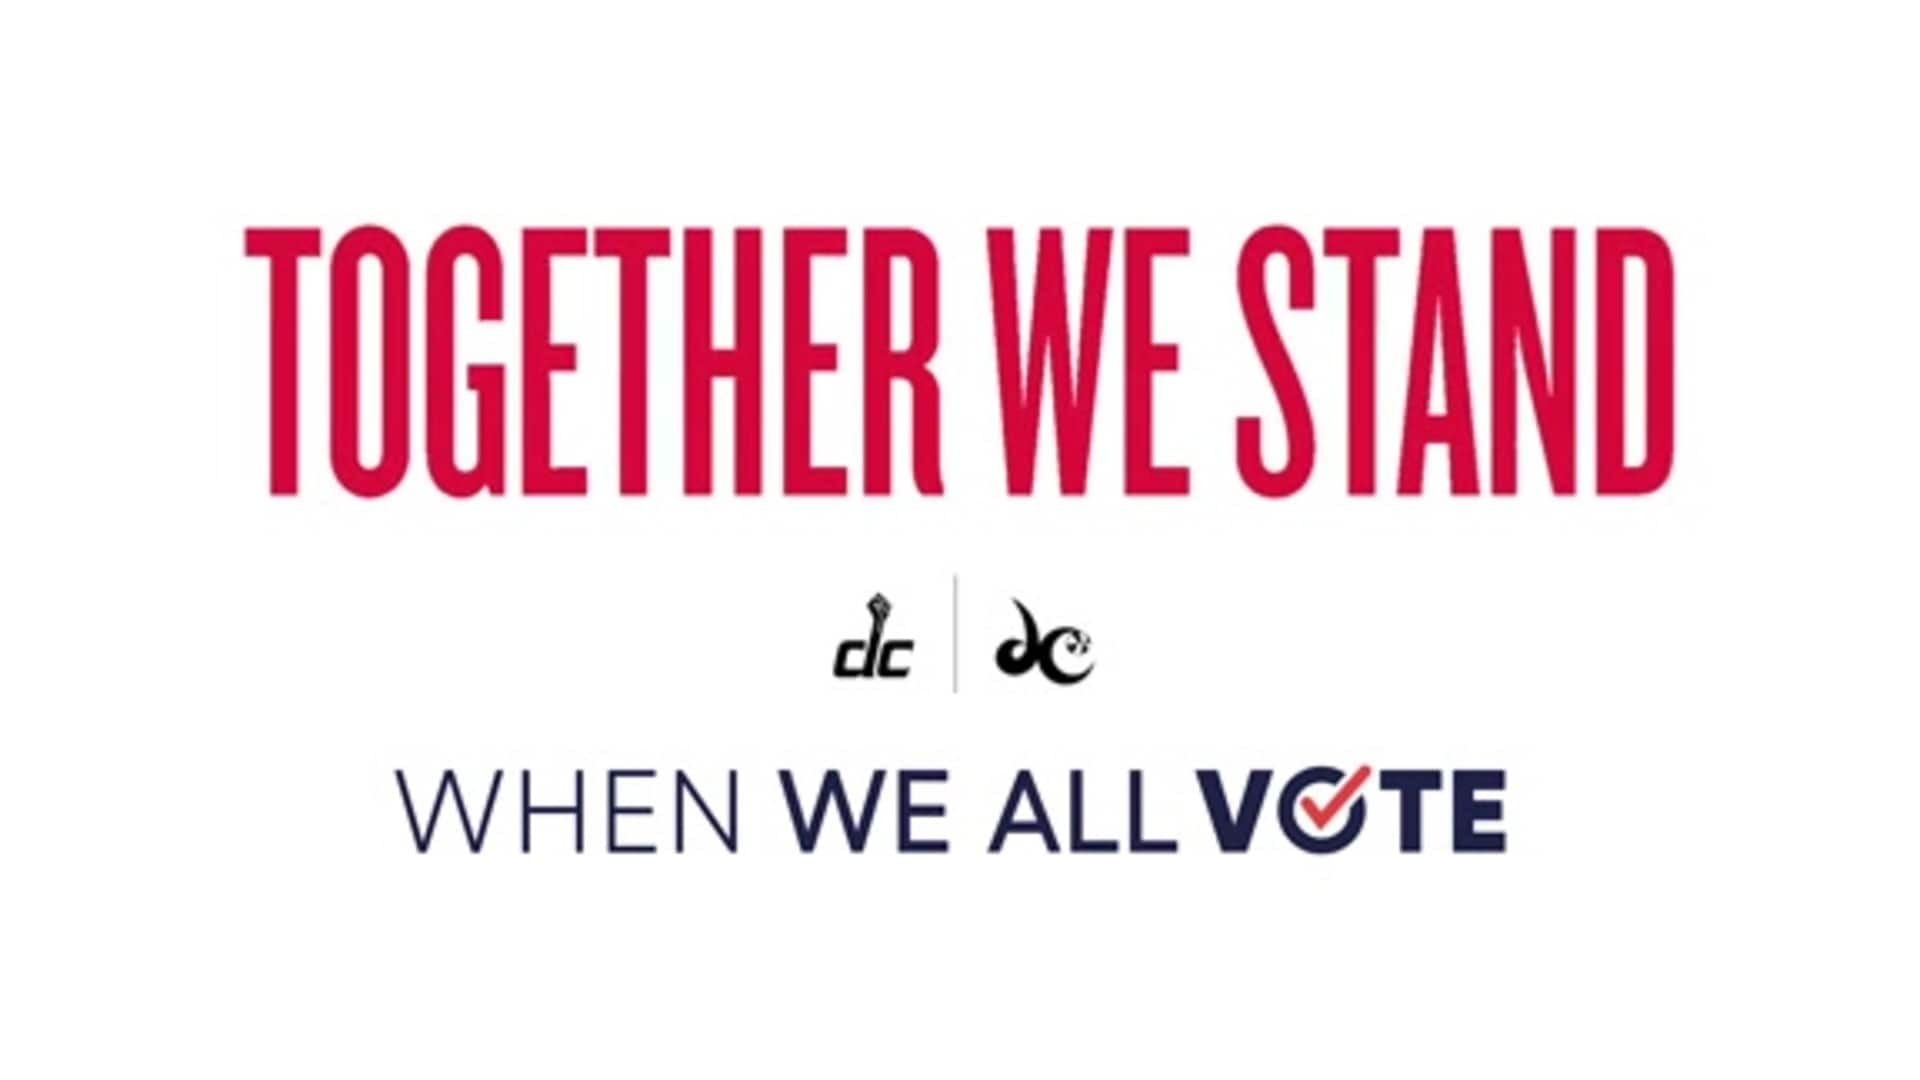 Wizards, Mystics launch voting PSA with When We All Vote